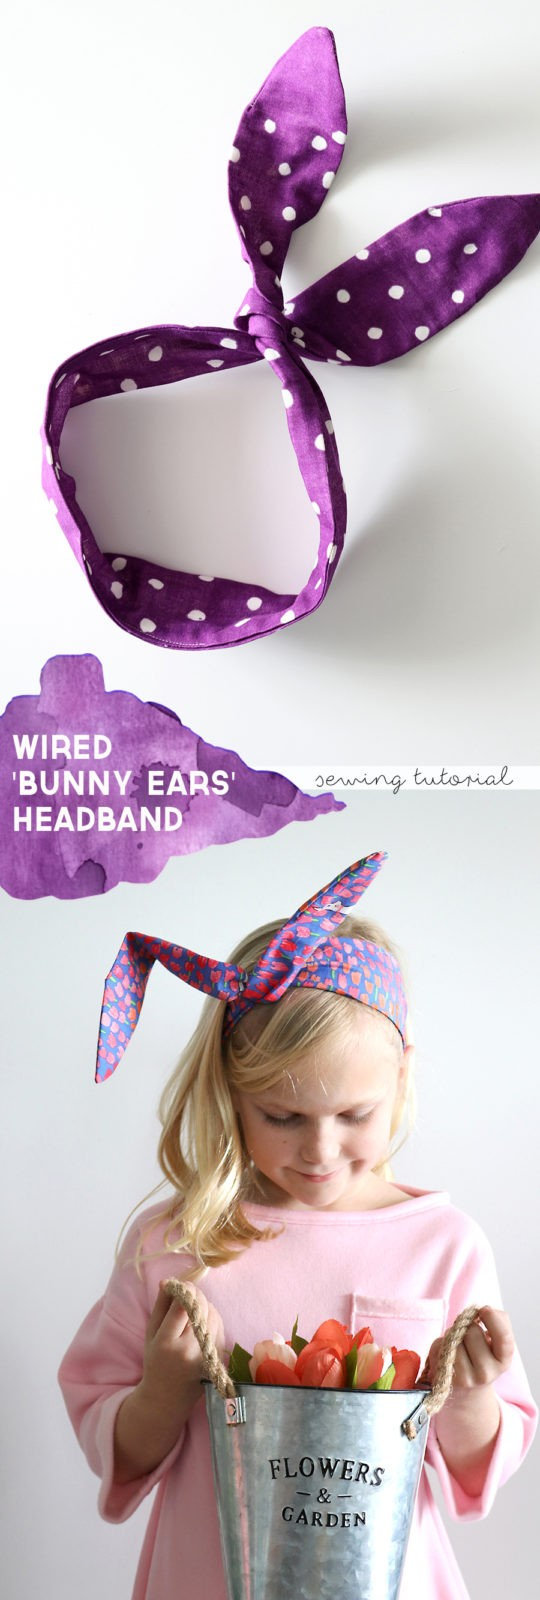 how to make a wired bunny ears headband